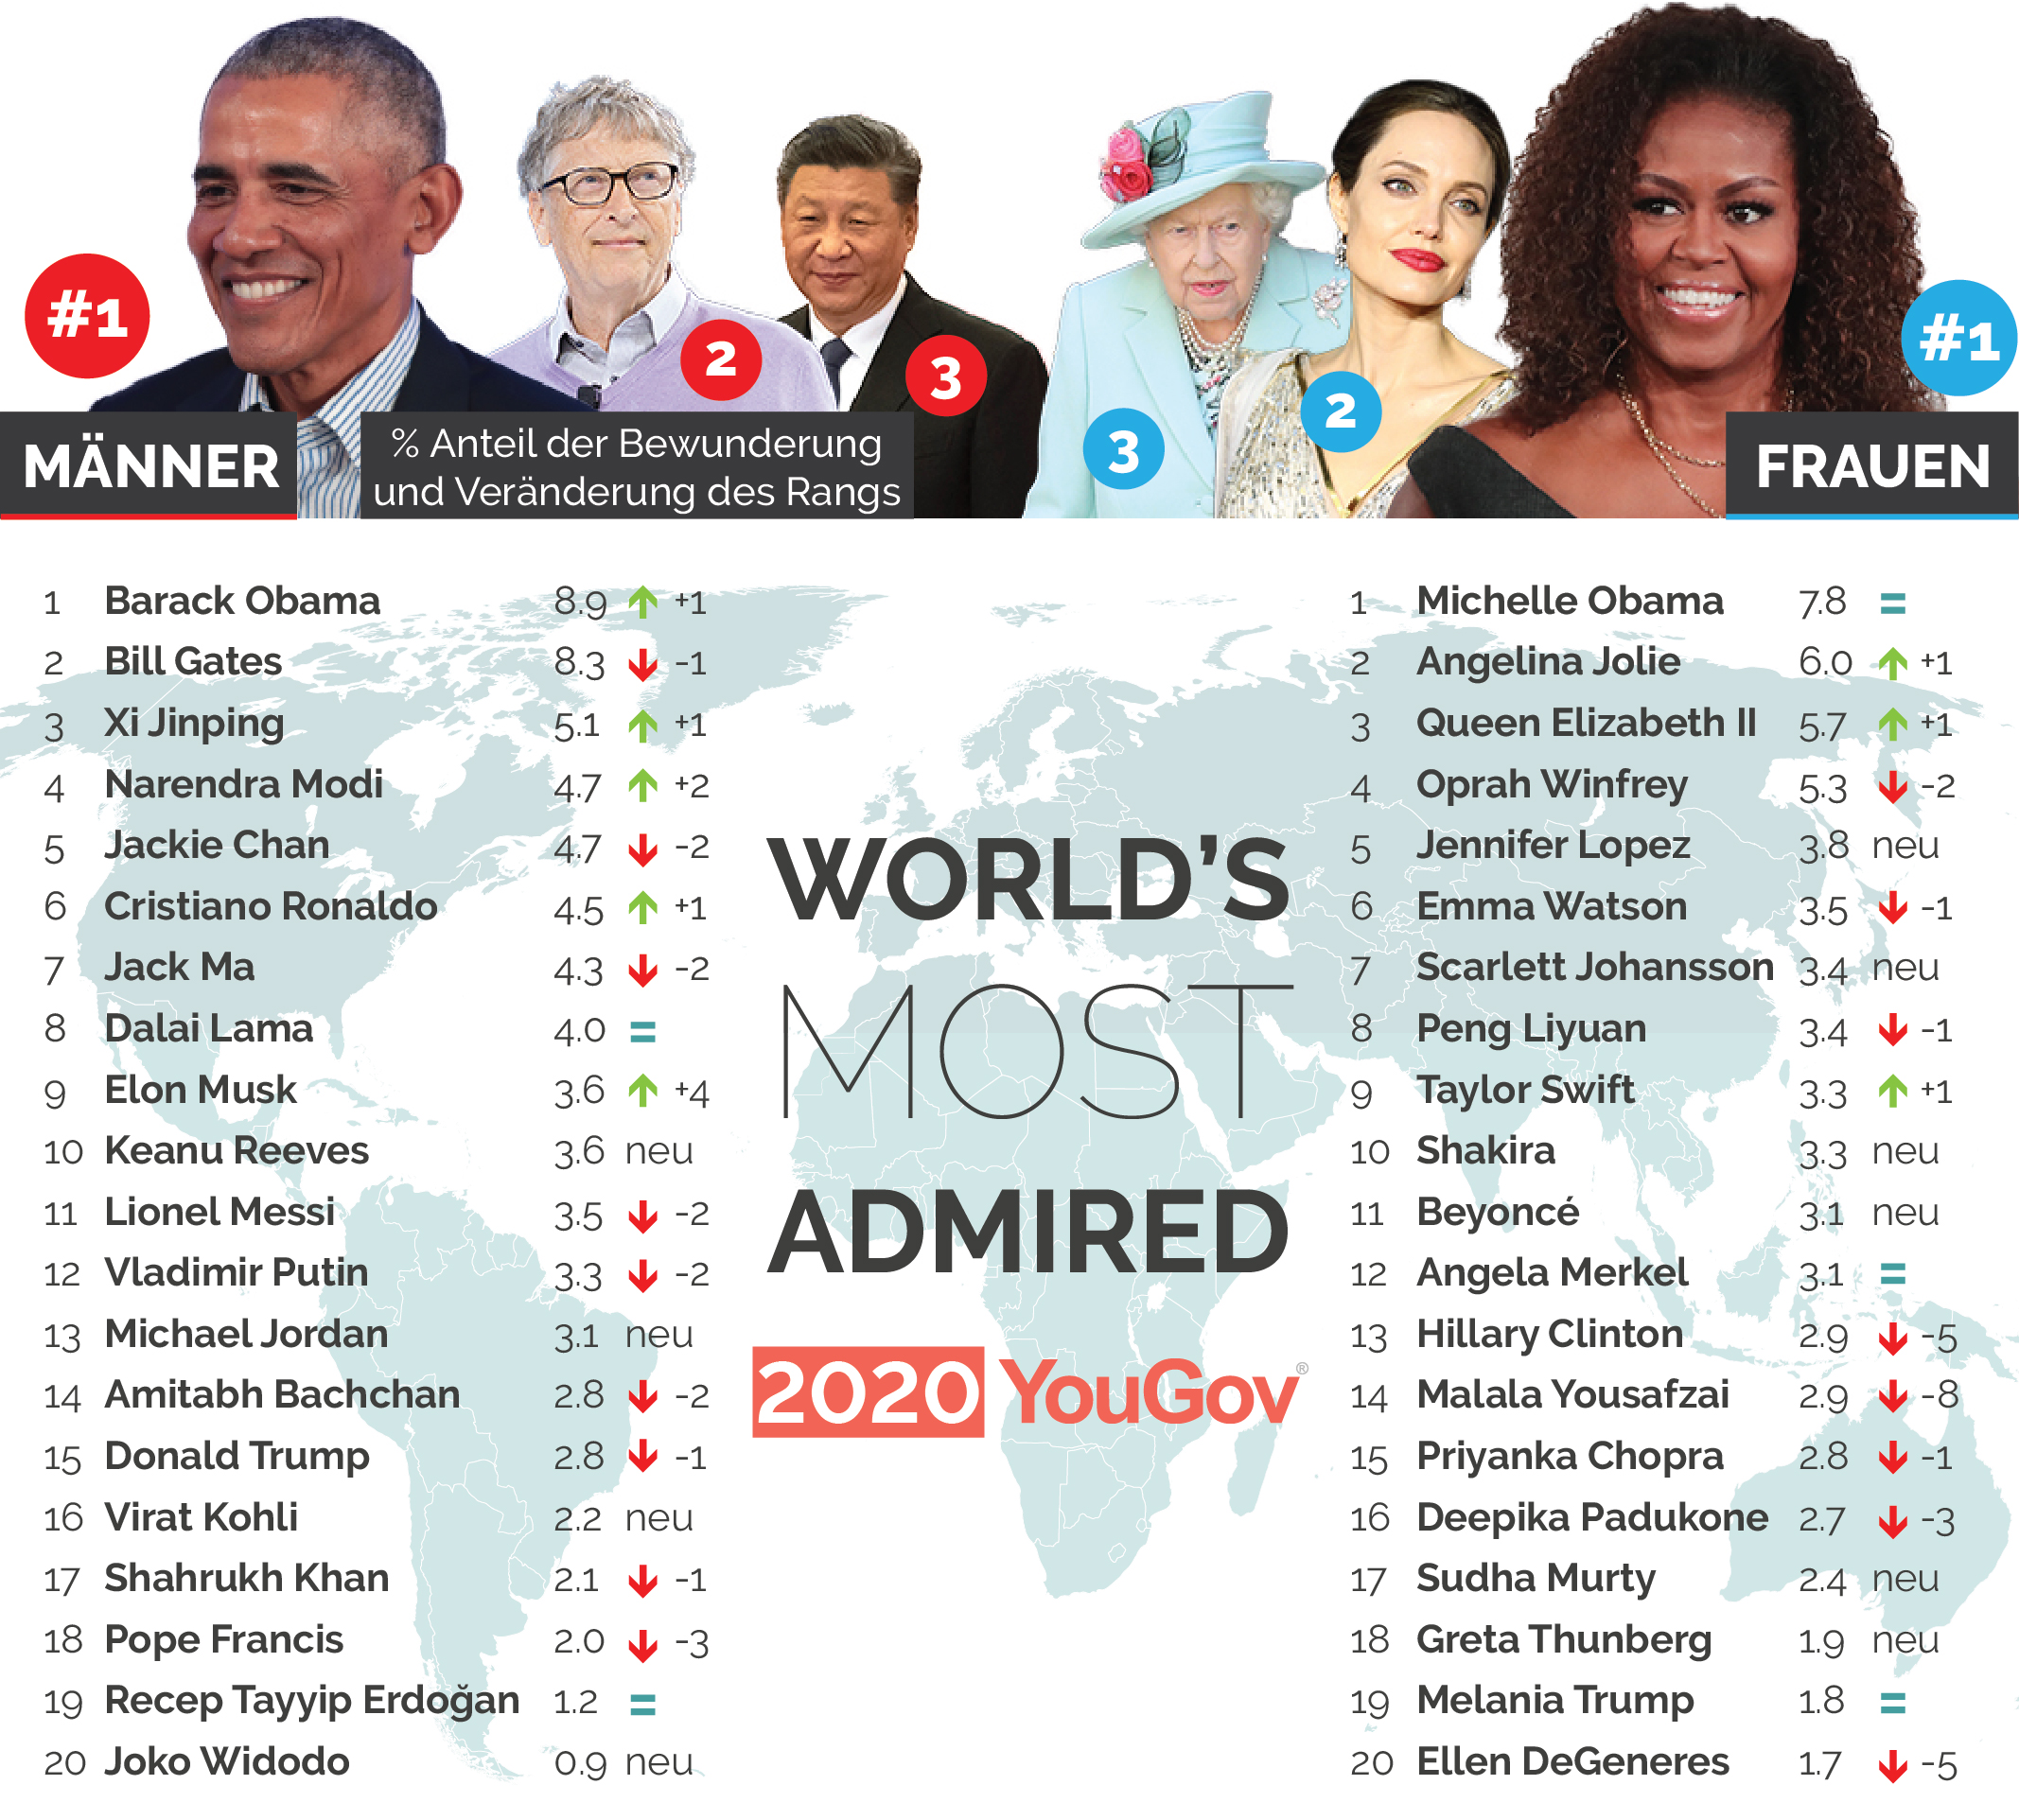 World's Most Admired 2020